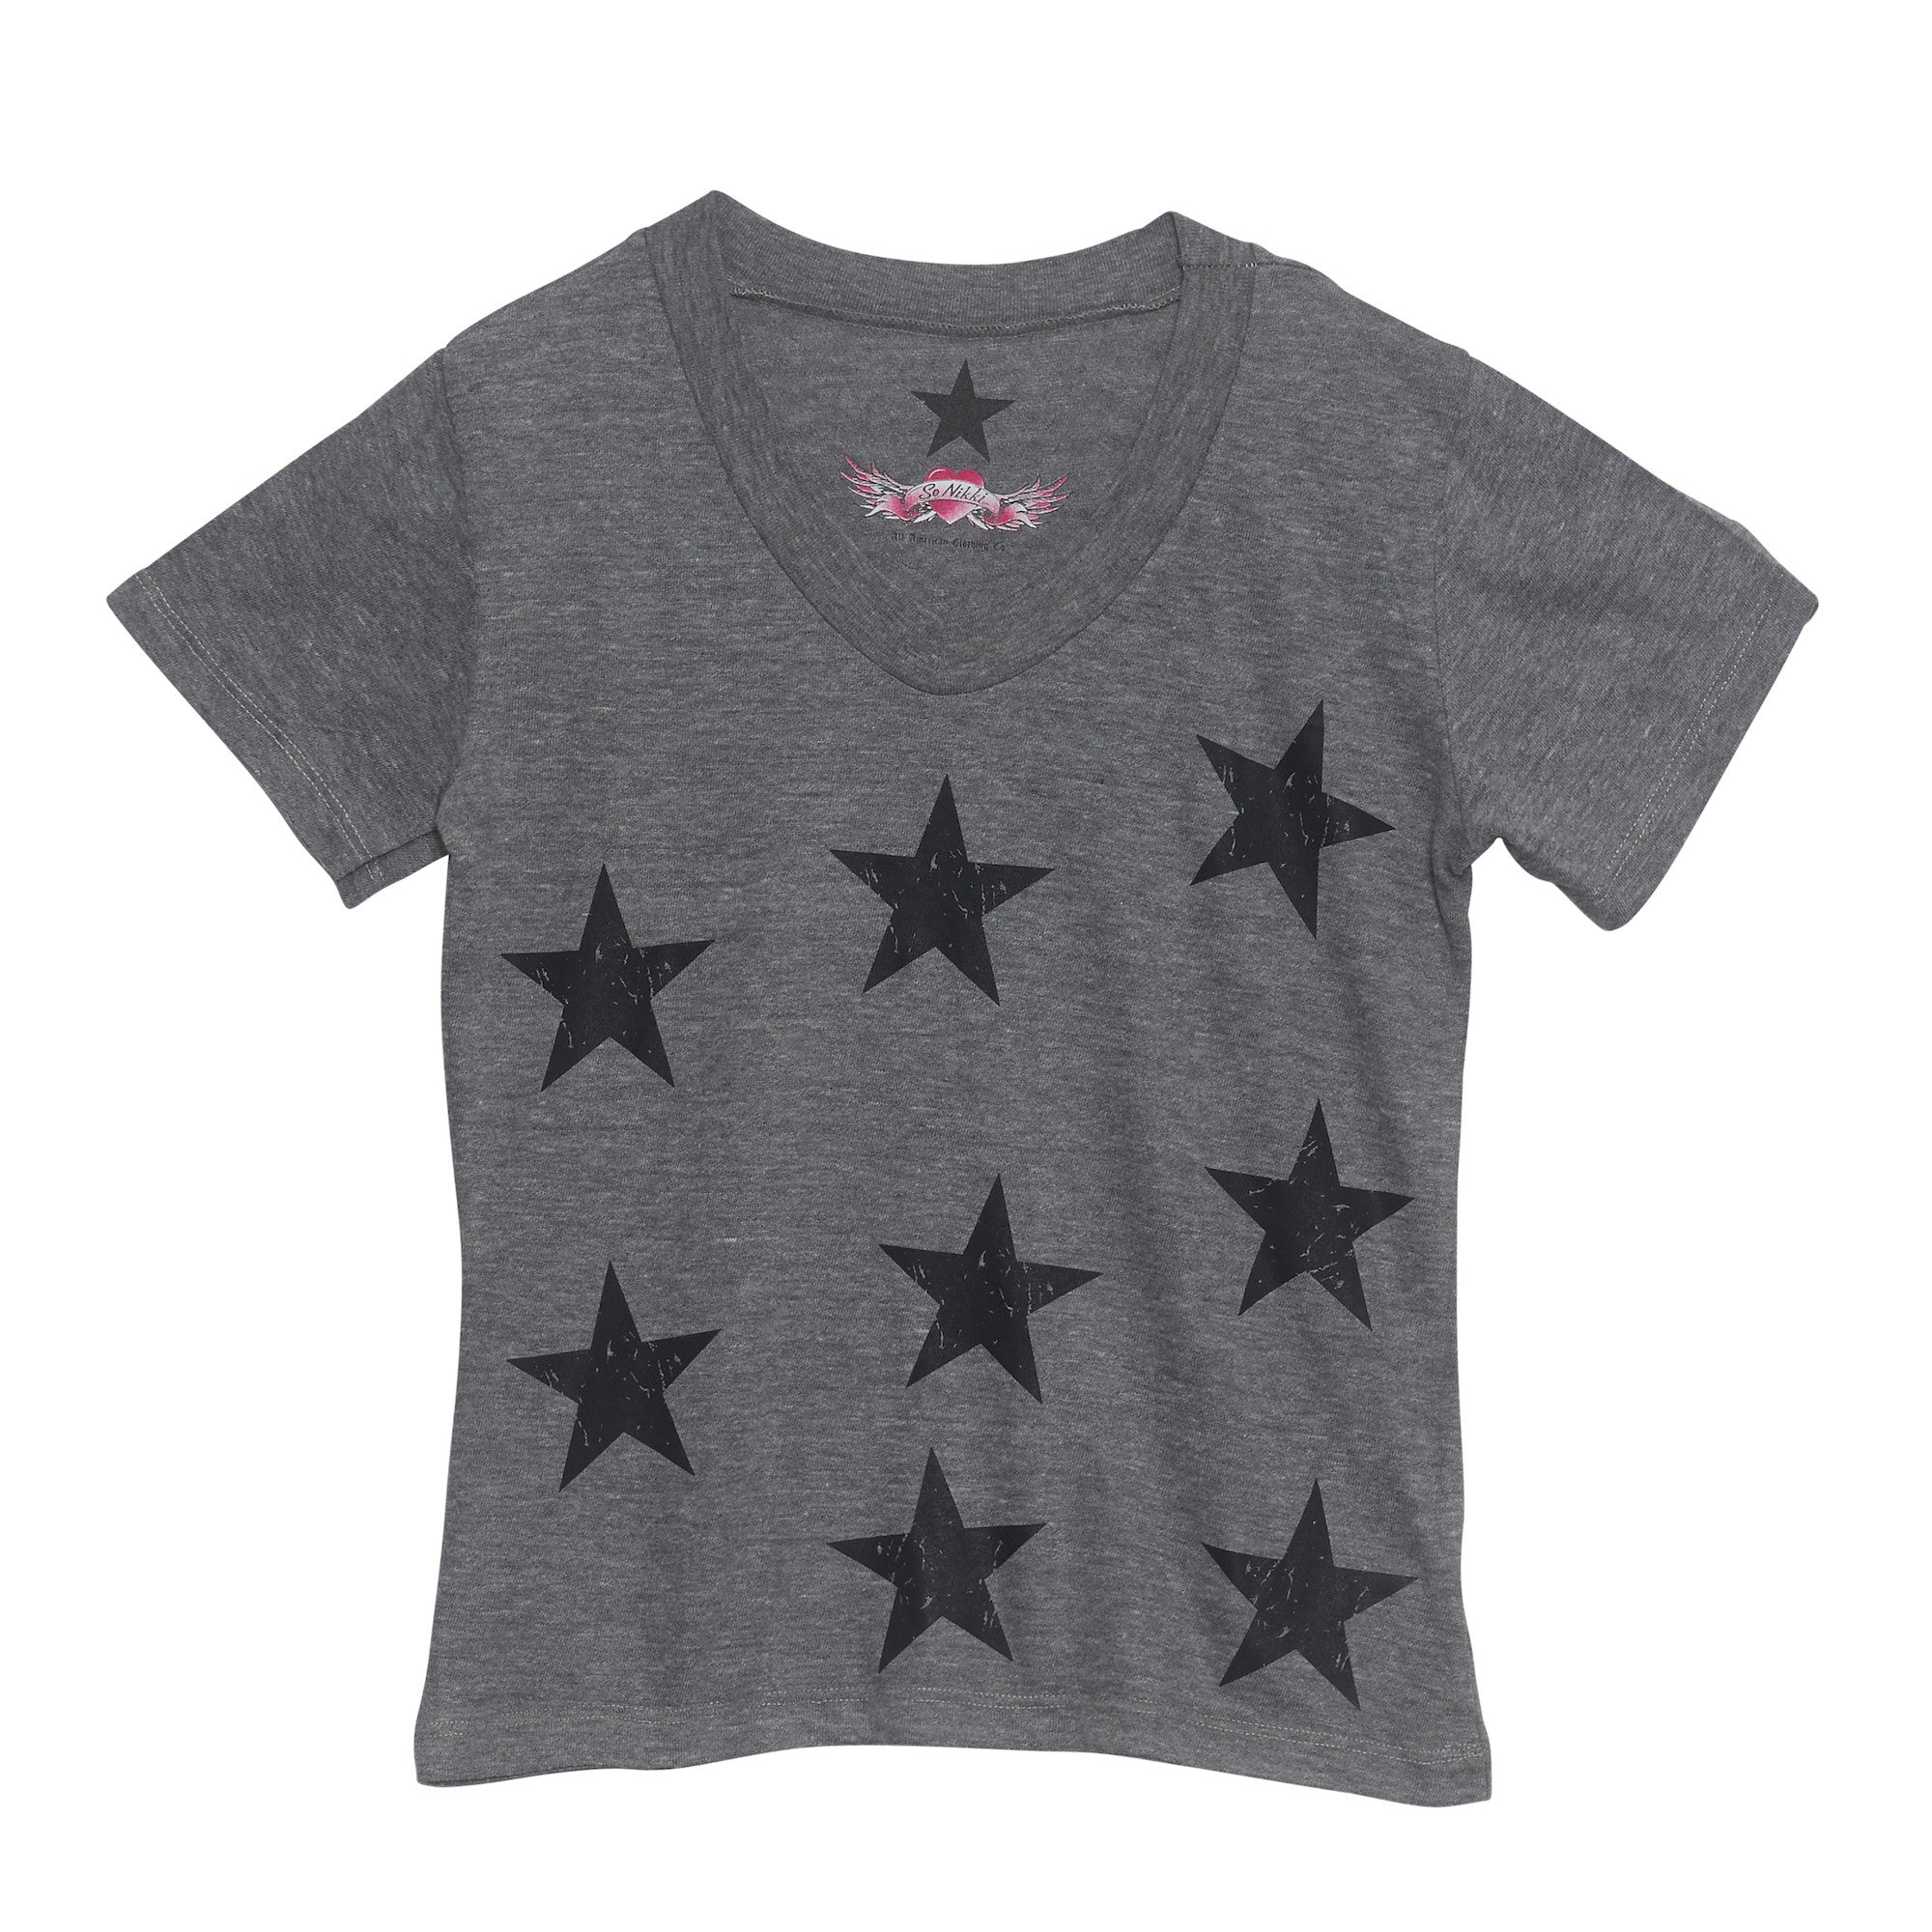 So Nikki, scattered stars tee, vintage stars tee